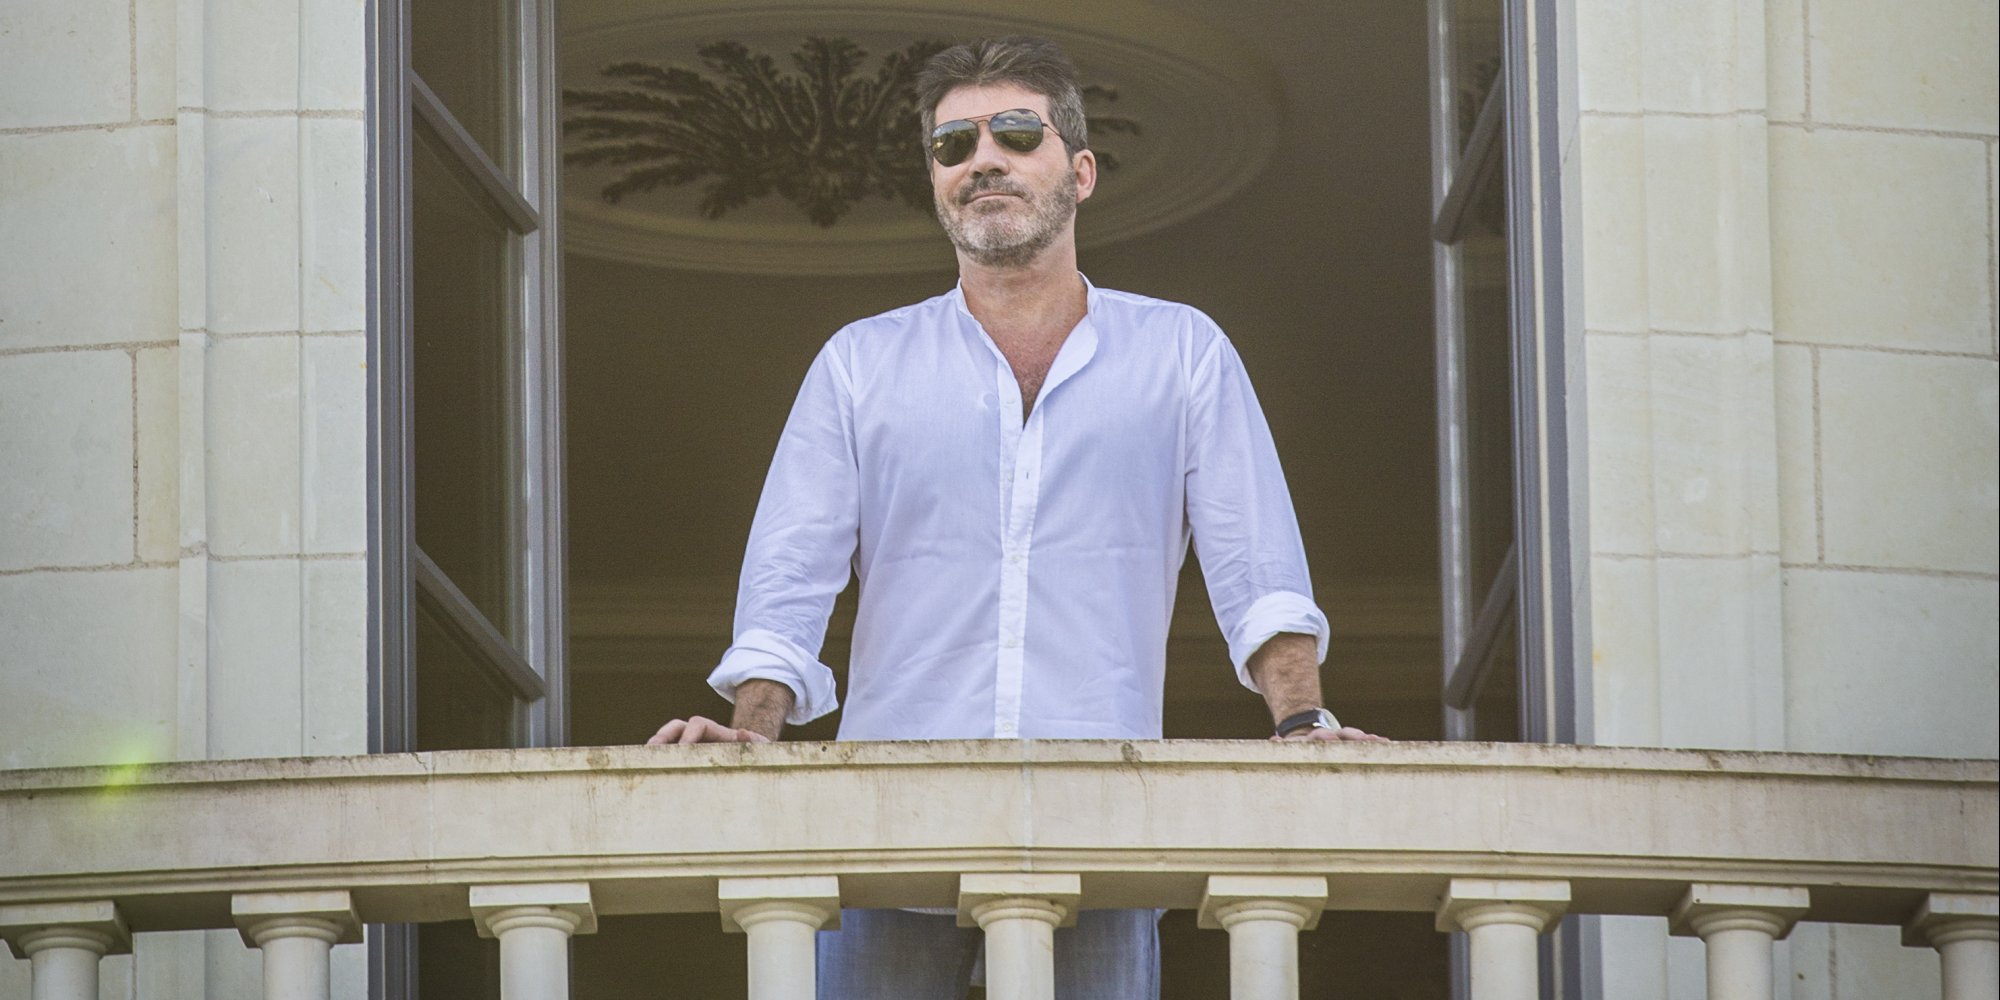 'X Factor' Judges Houses: Simon Cowell Claims To Have Seen ...